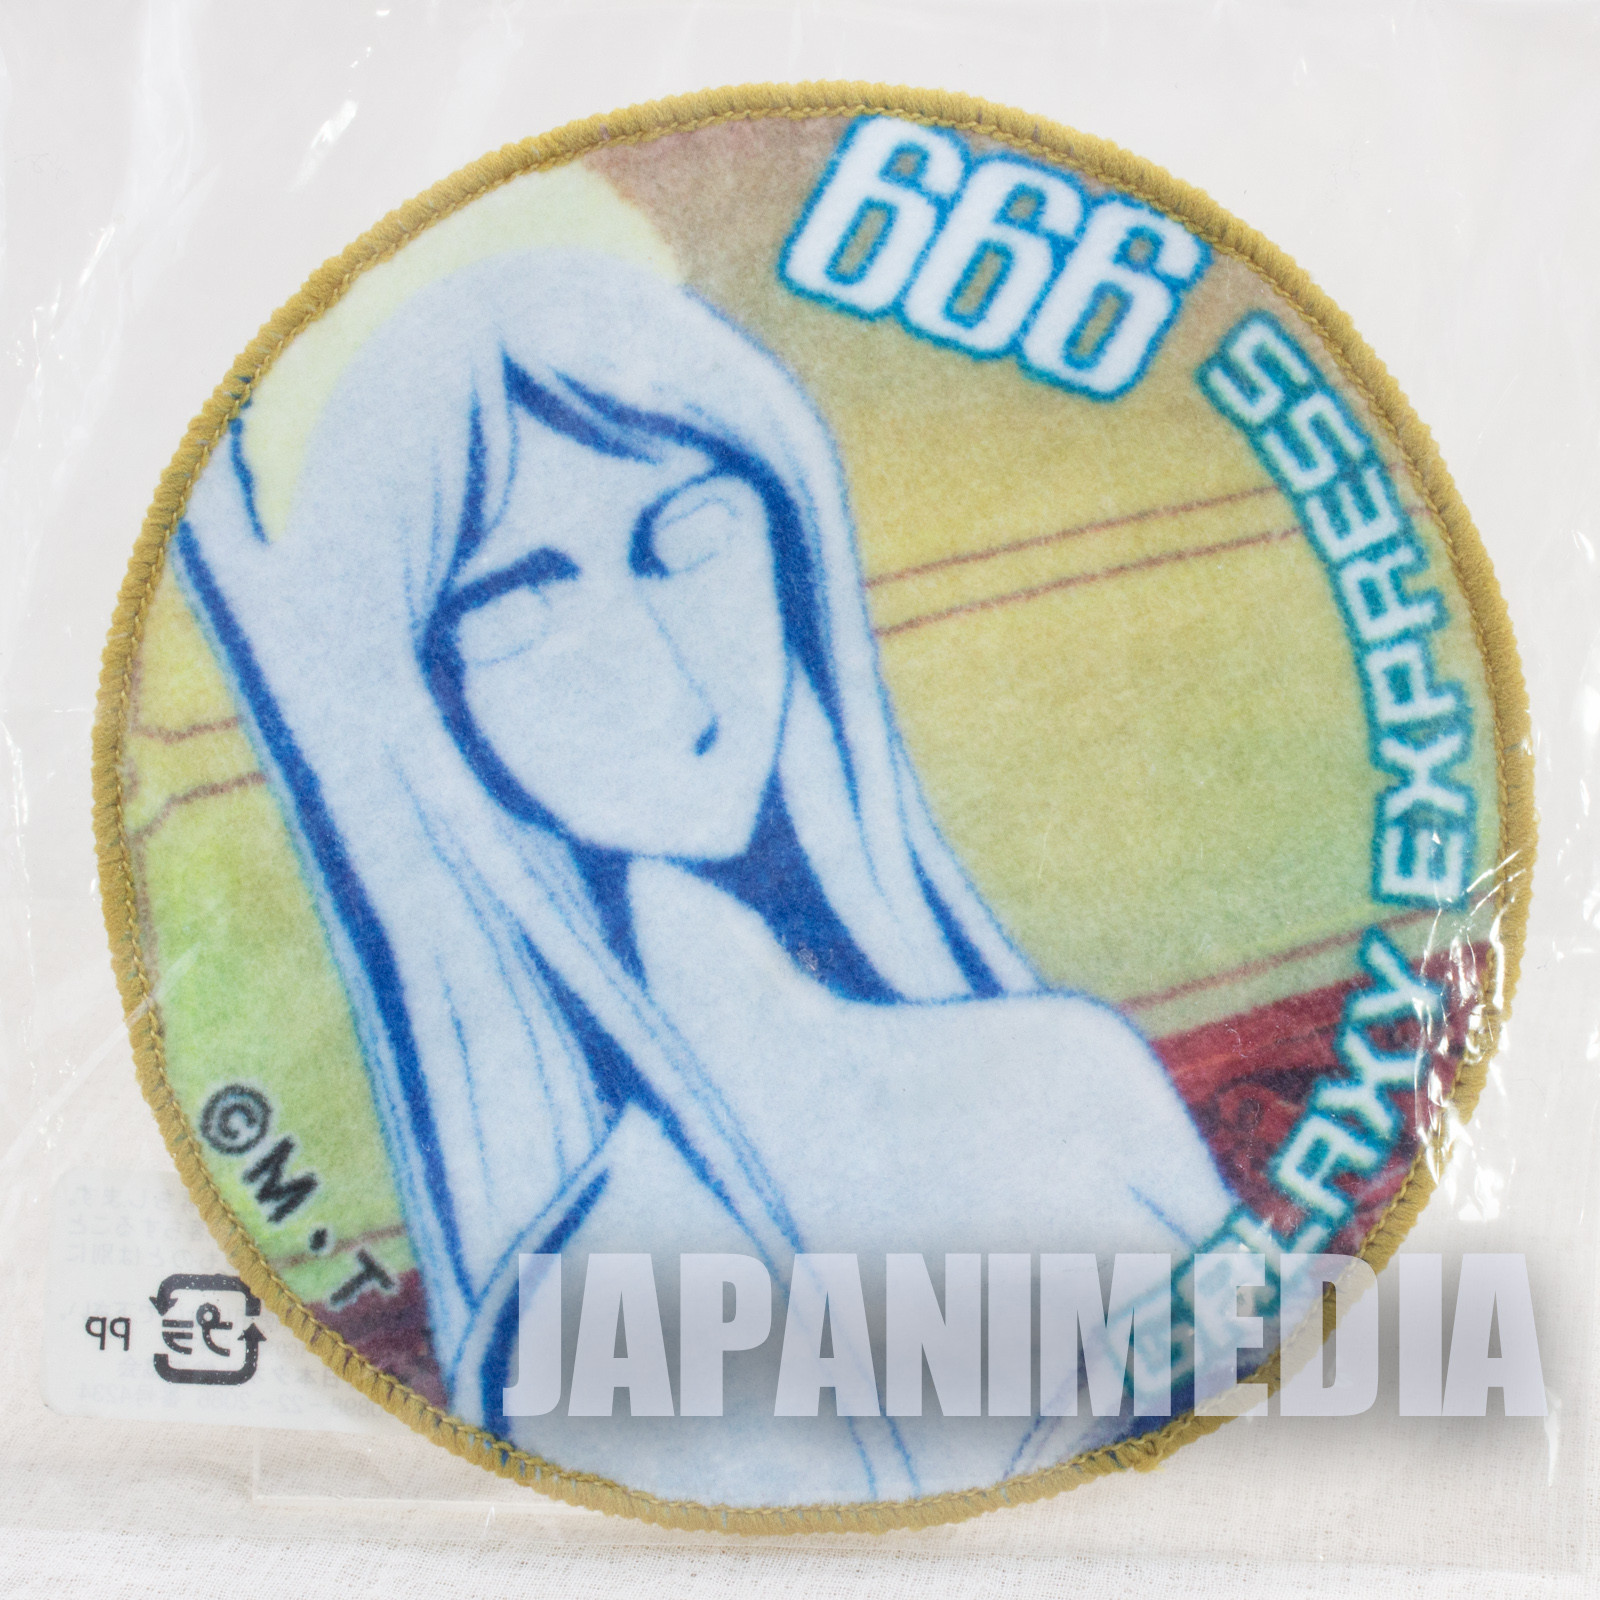 RARE!! Galaxy Express 999 Crystal Claire Cloth Coaster Reiji Matsumoto